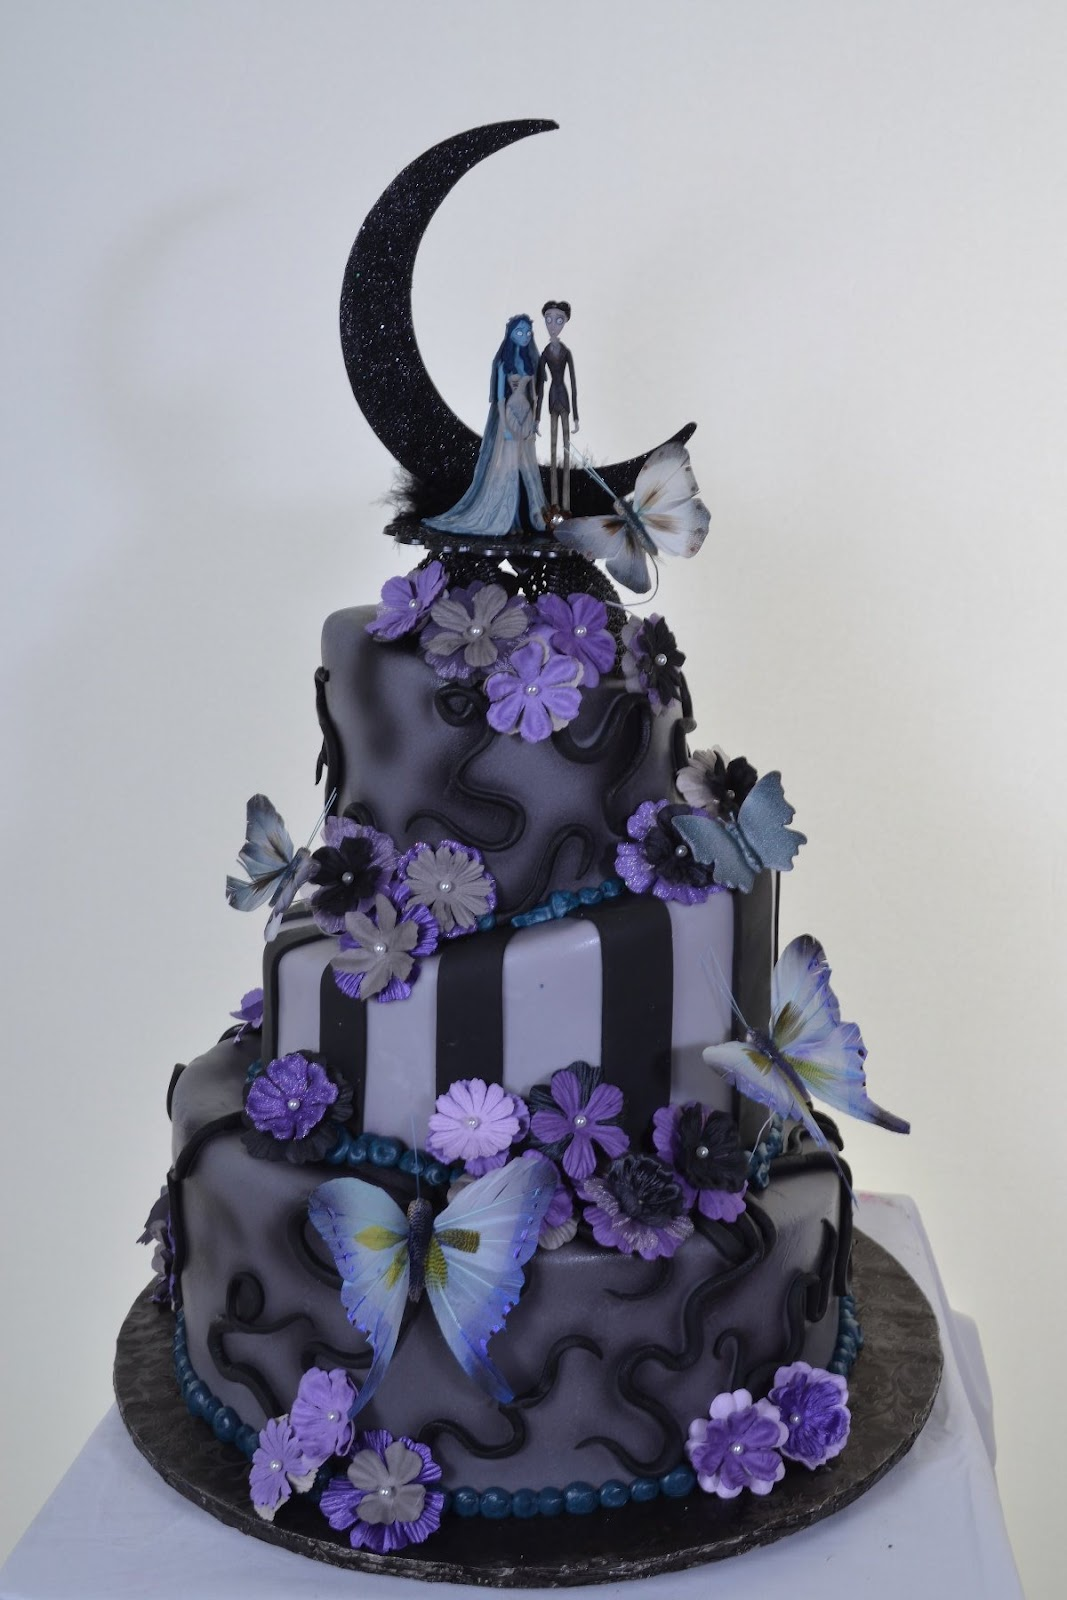 Wedding Cakes Pictures: Nightmare Before Christmas Wedding Cake